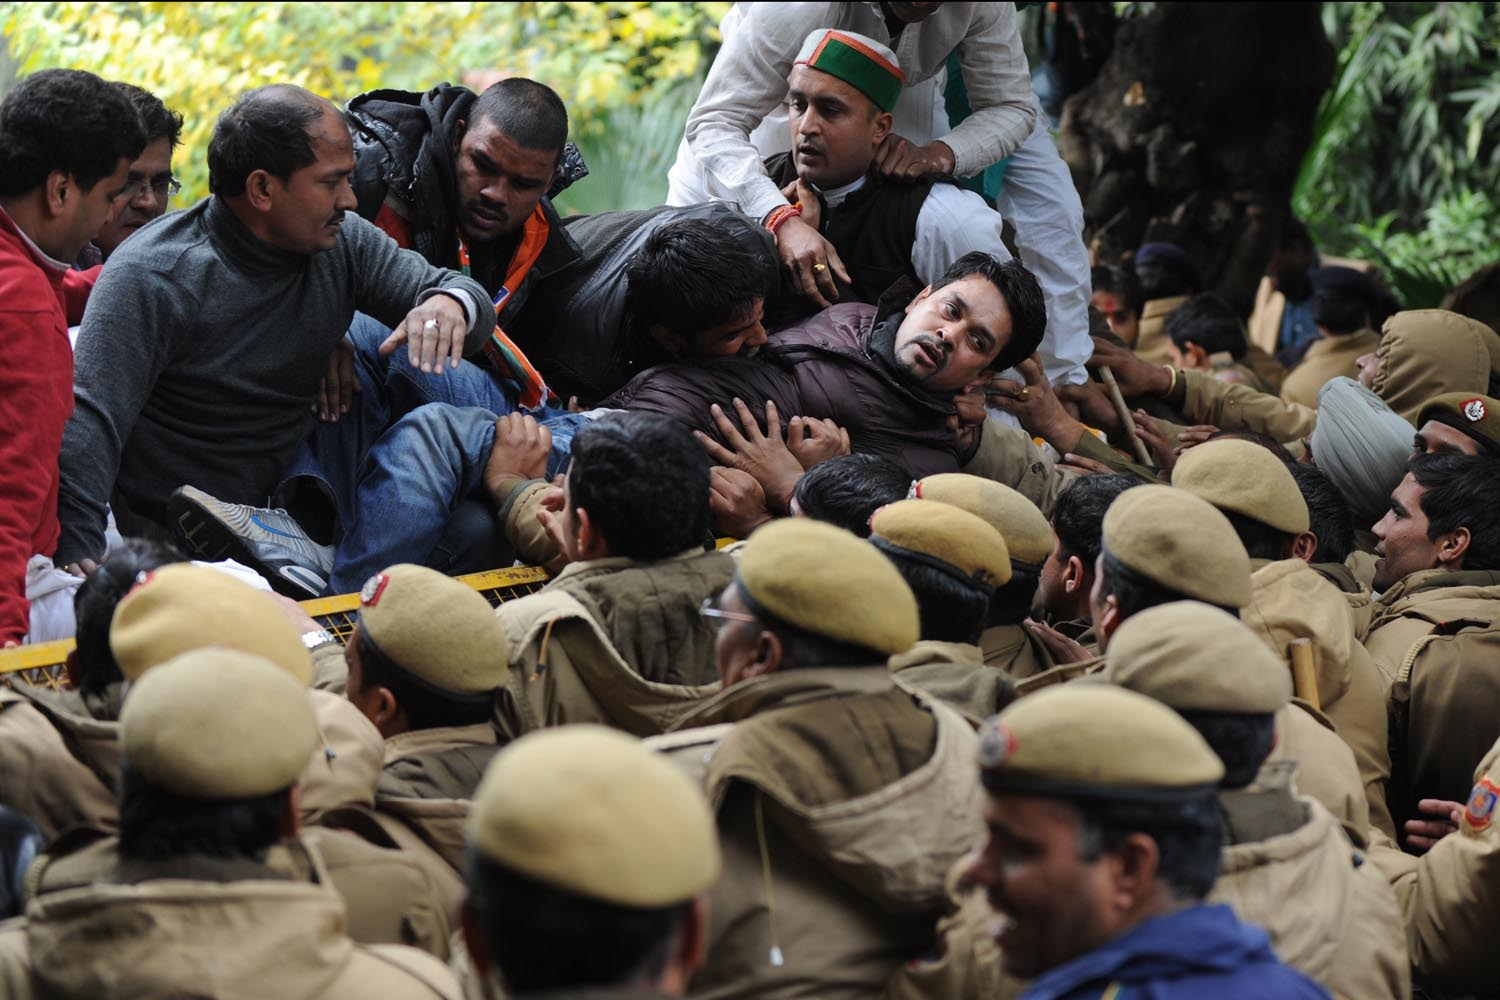 Dec. 31, 2013. Indian Bharatiya Janata Party (BJP) leader Anurag Thakur (C) tries to cross a police barricade during a protest outside Congress Vice President Rahul Gandhi's residence in New Delhi, India.